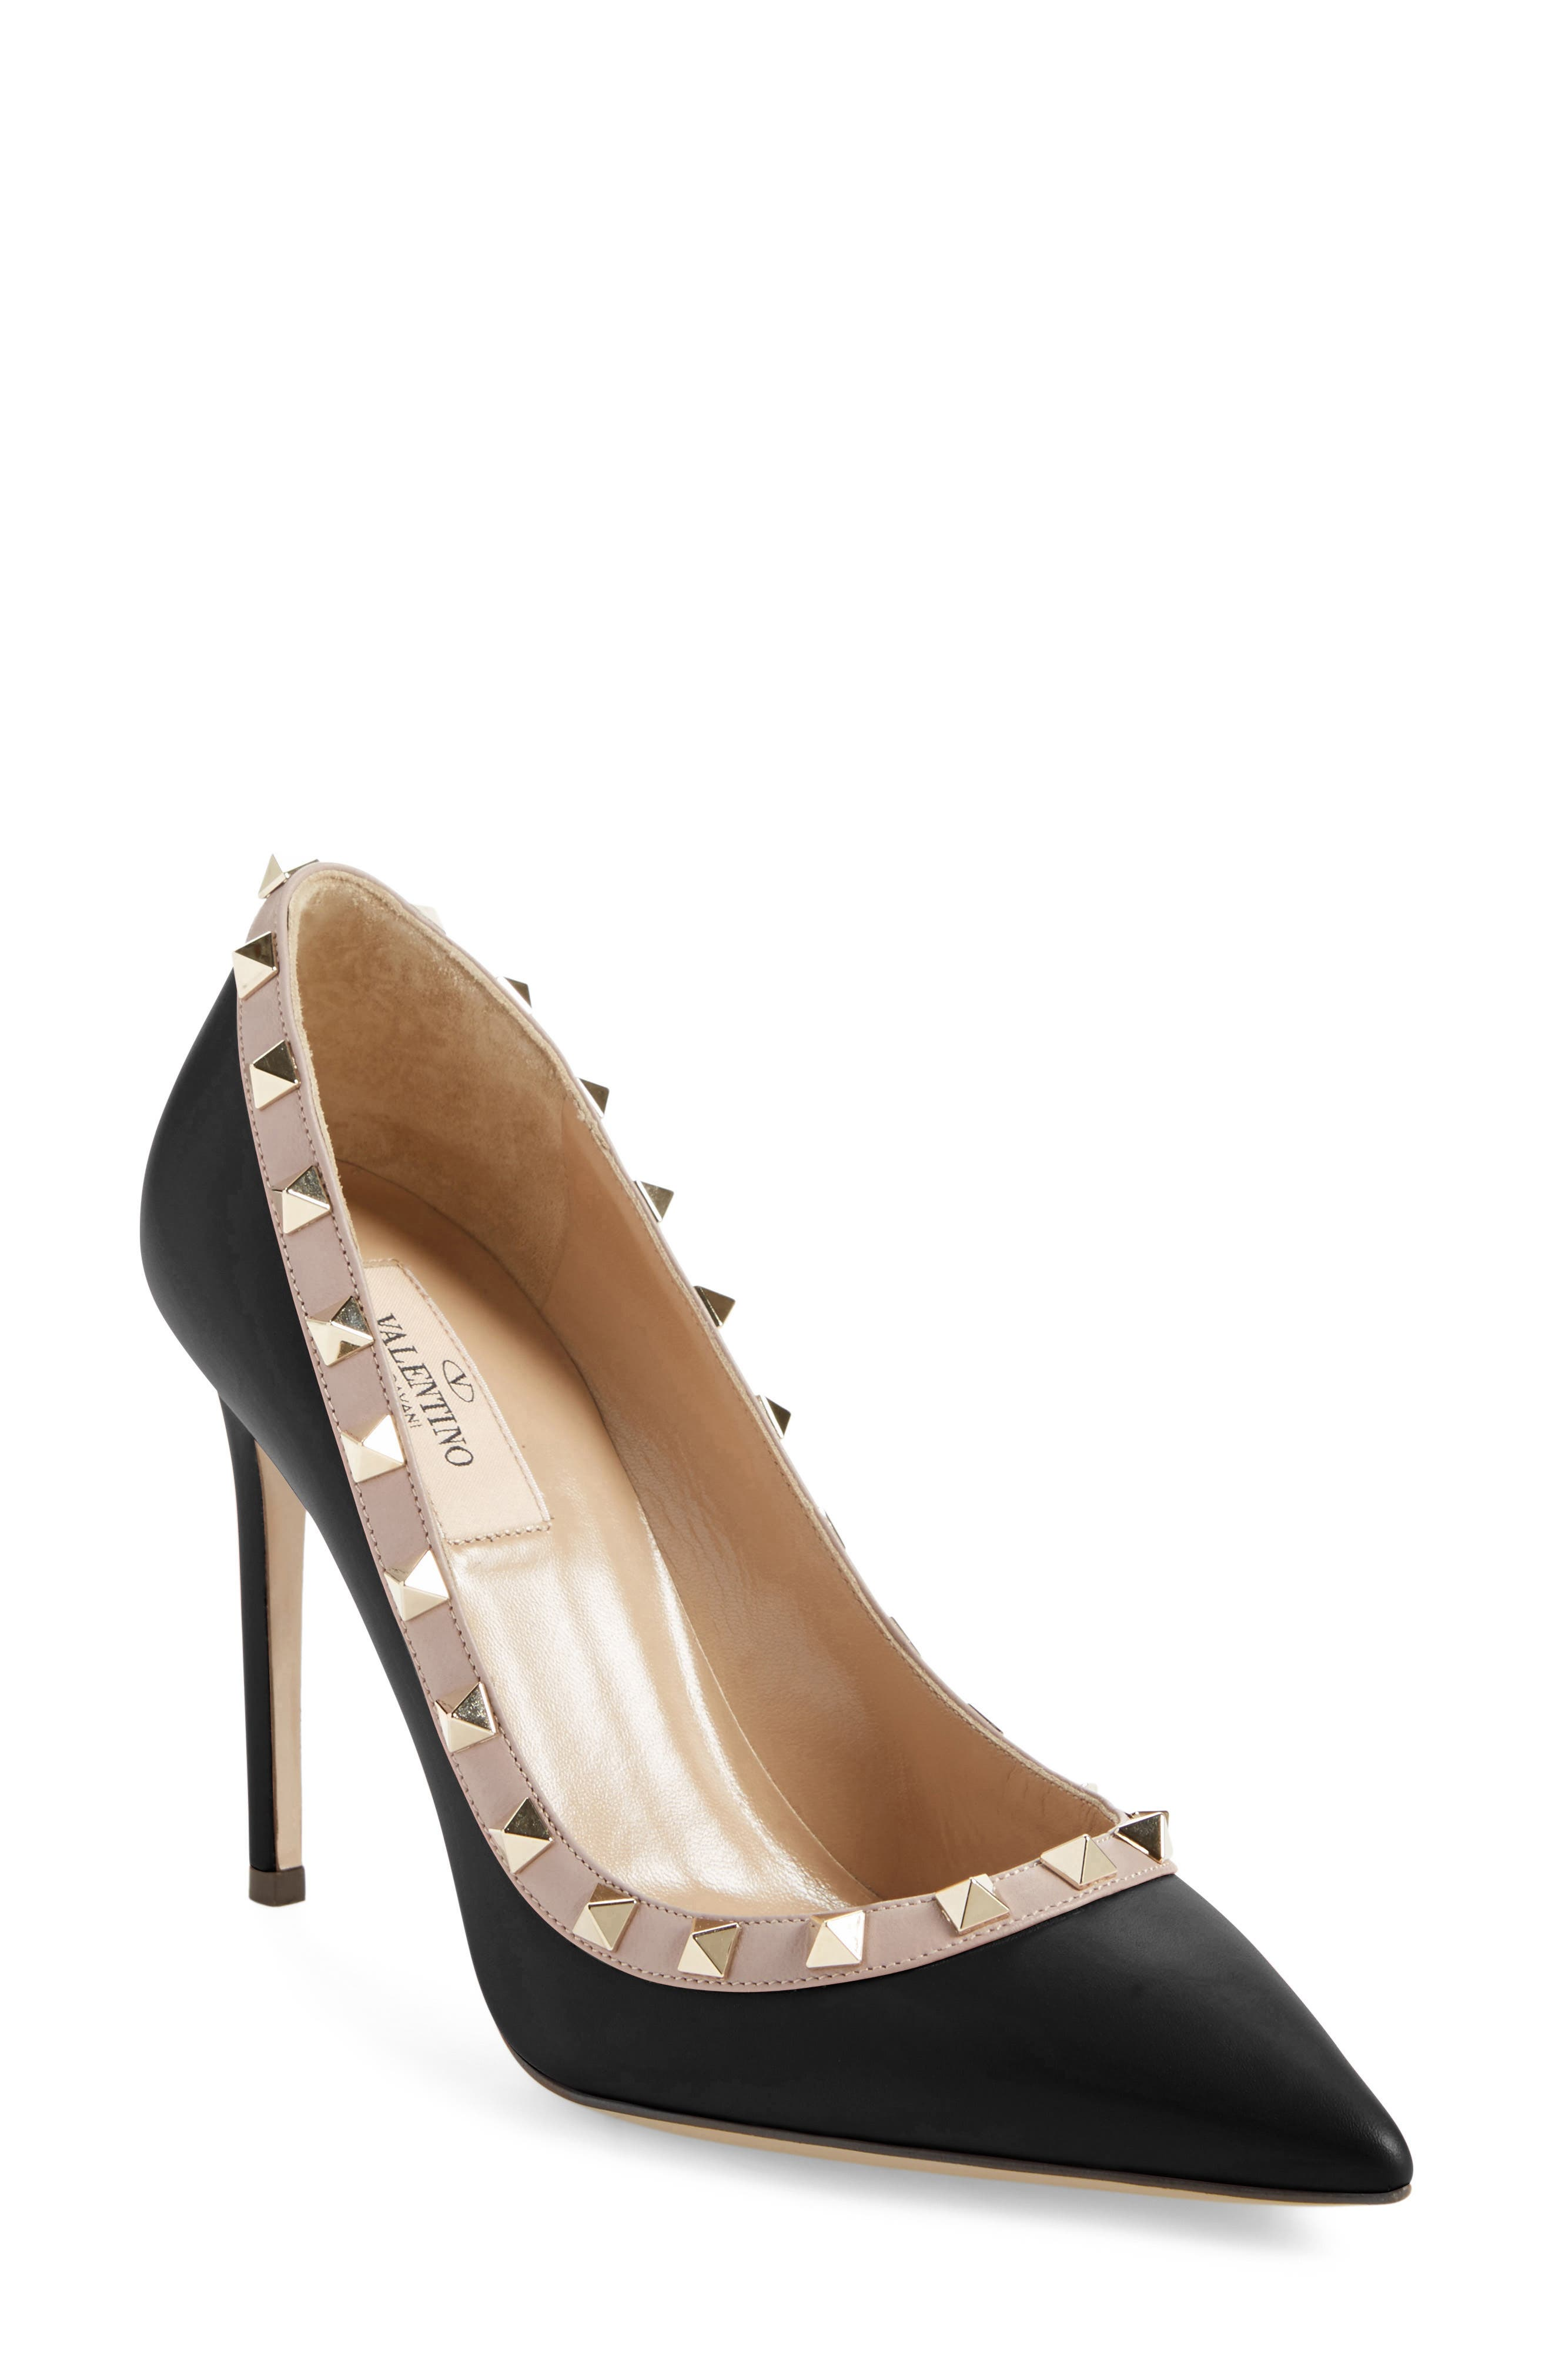 Rockstud Pointed Pump,                         Main,                         color, Black/ Nude Leather